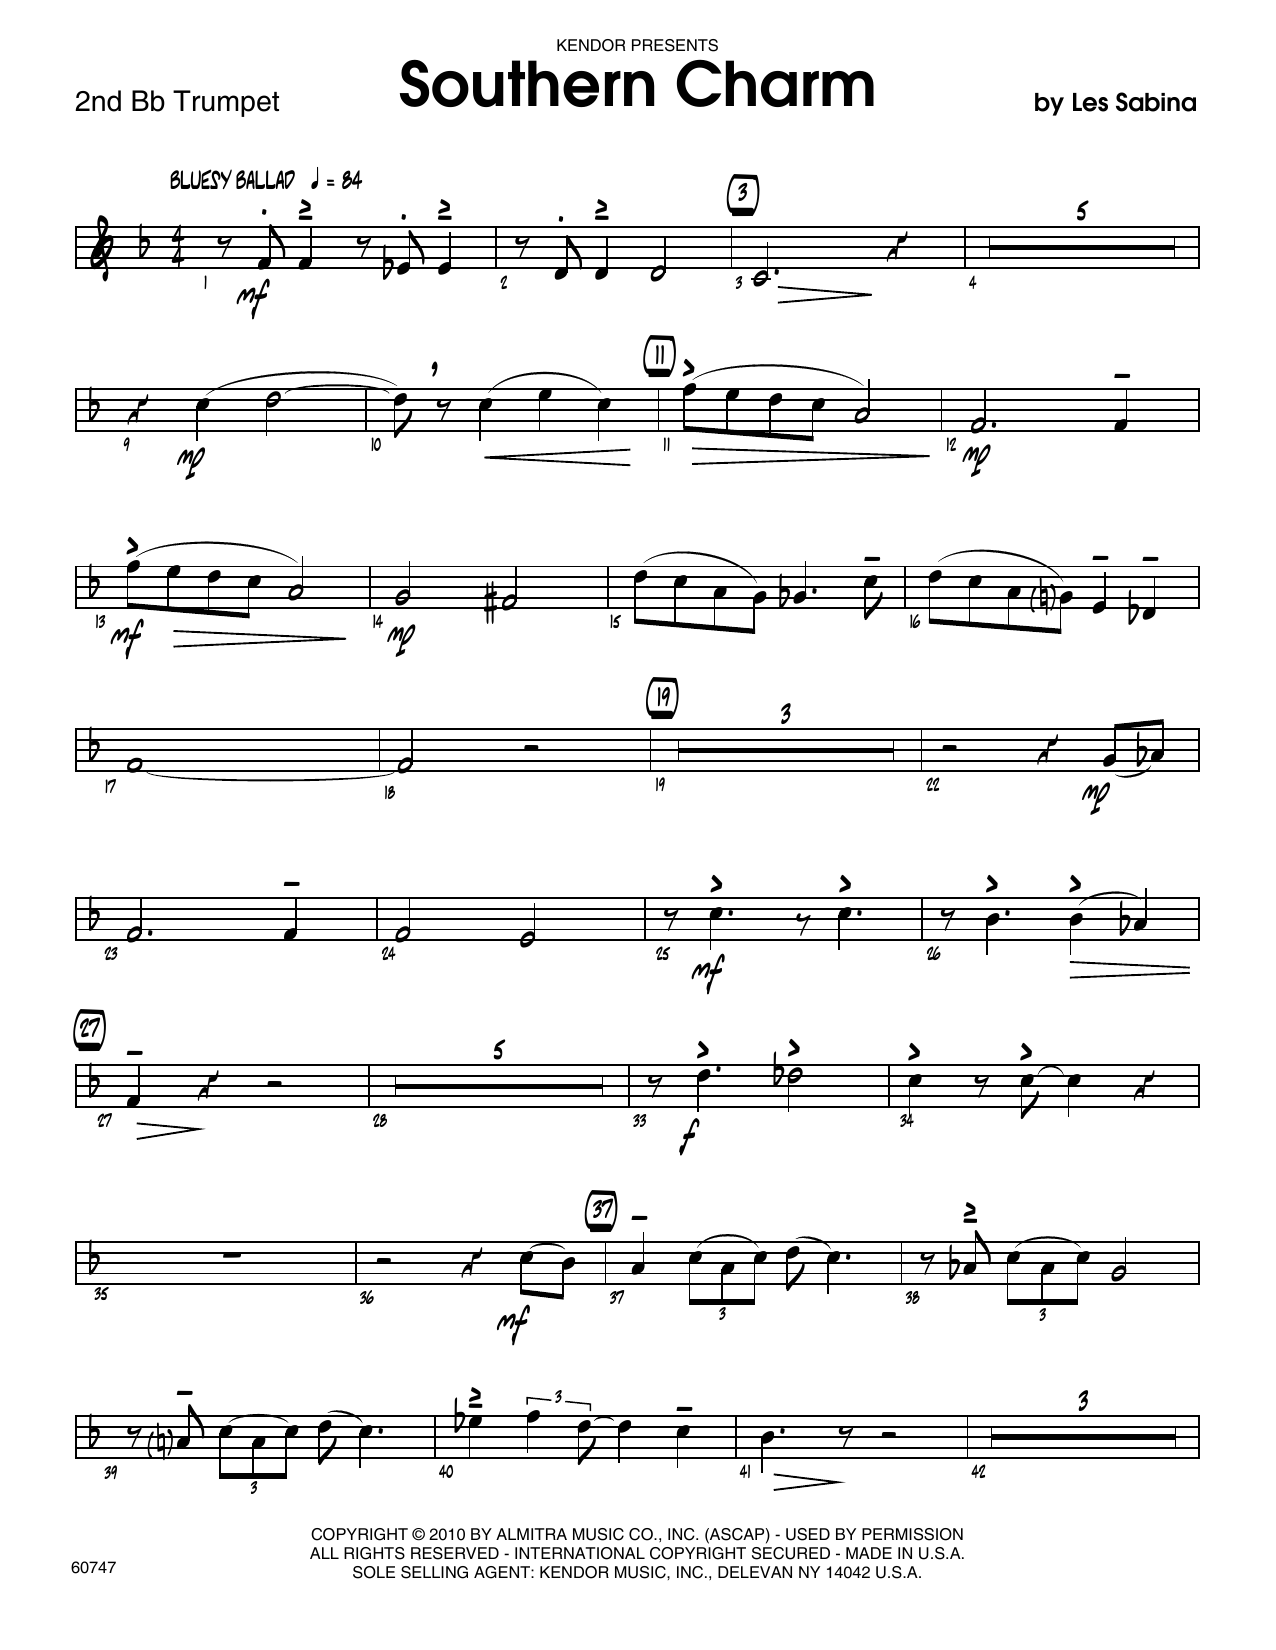 Southern Charm - 2nd Bb Trumpet Sheet Music